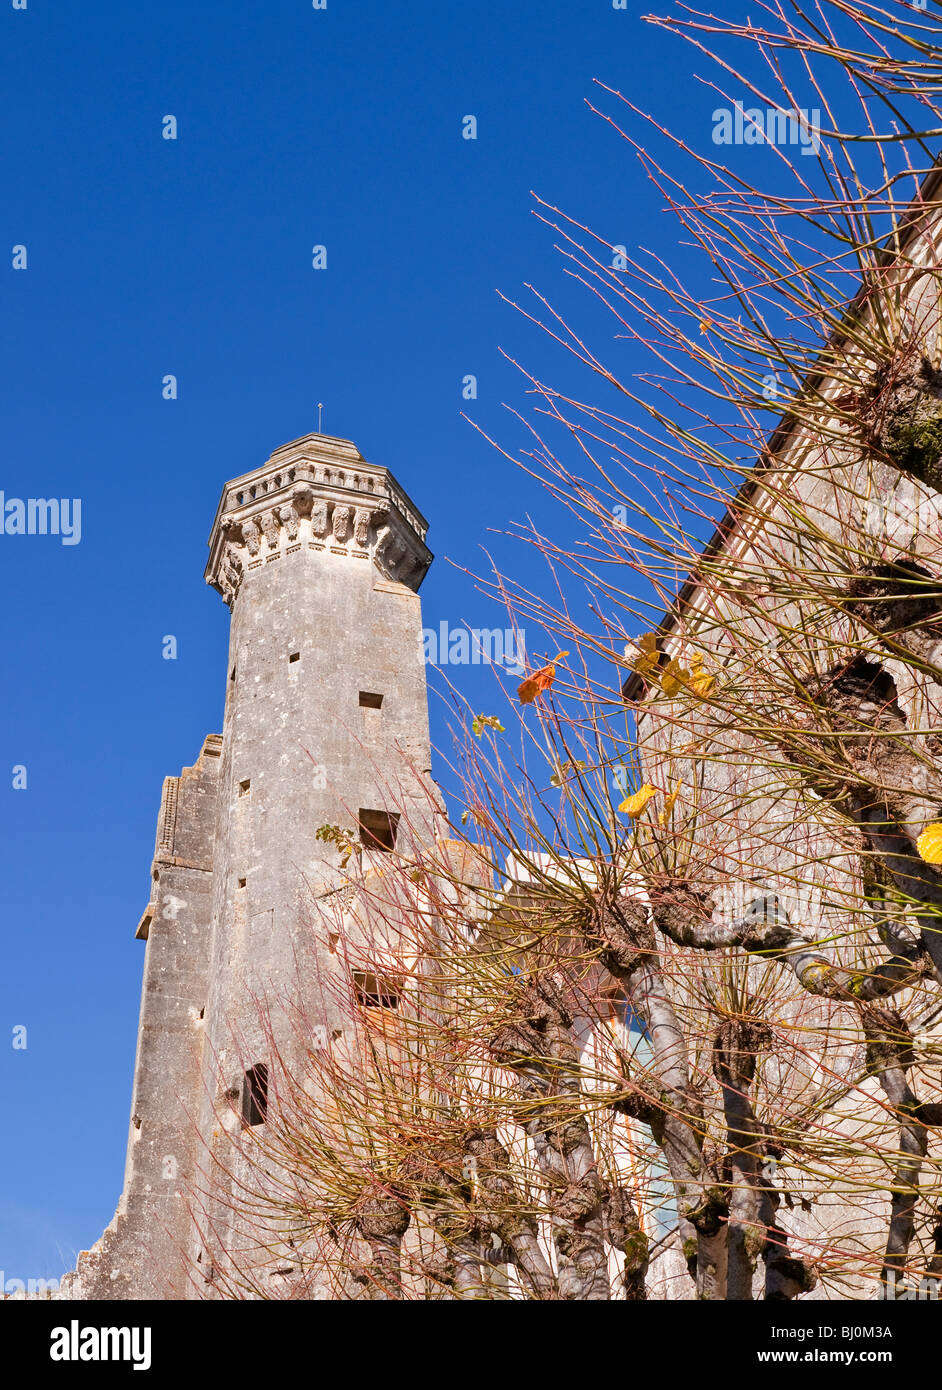 16th Century Octagonal stone tower, Chateau Le Grand-Pressigny, sud-Touraine, France. - Stock Image